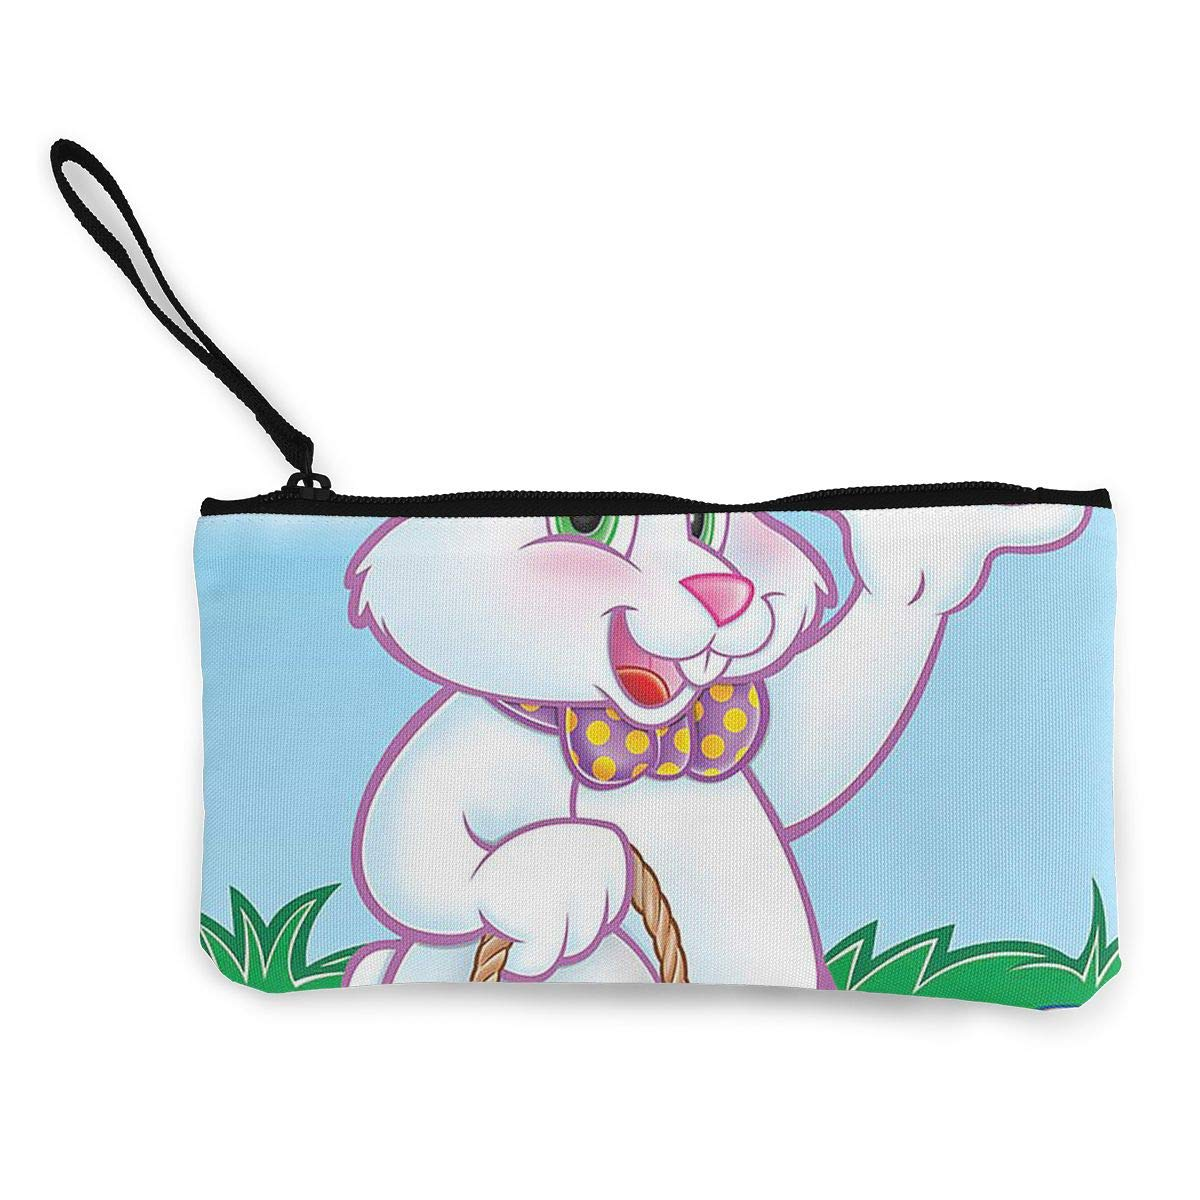 Maple Memories Easter Bunny Eggs Portable Canvas Coin Purse Change Purse Pouch Mini Wallet Gifts For Women Girls